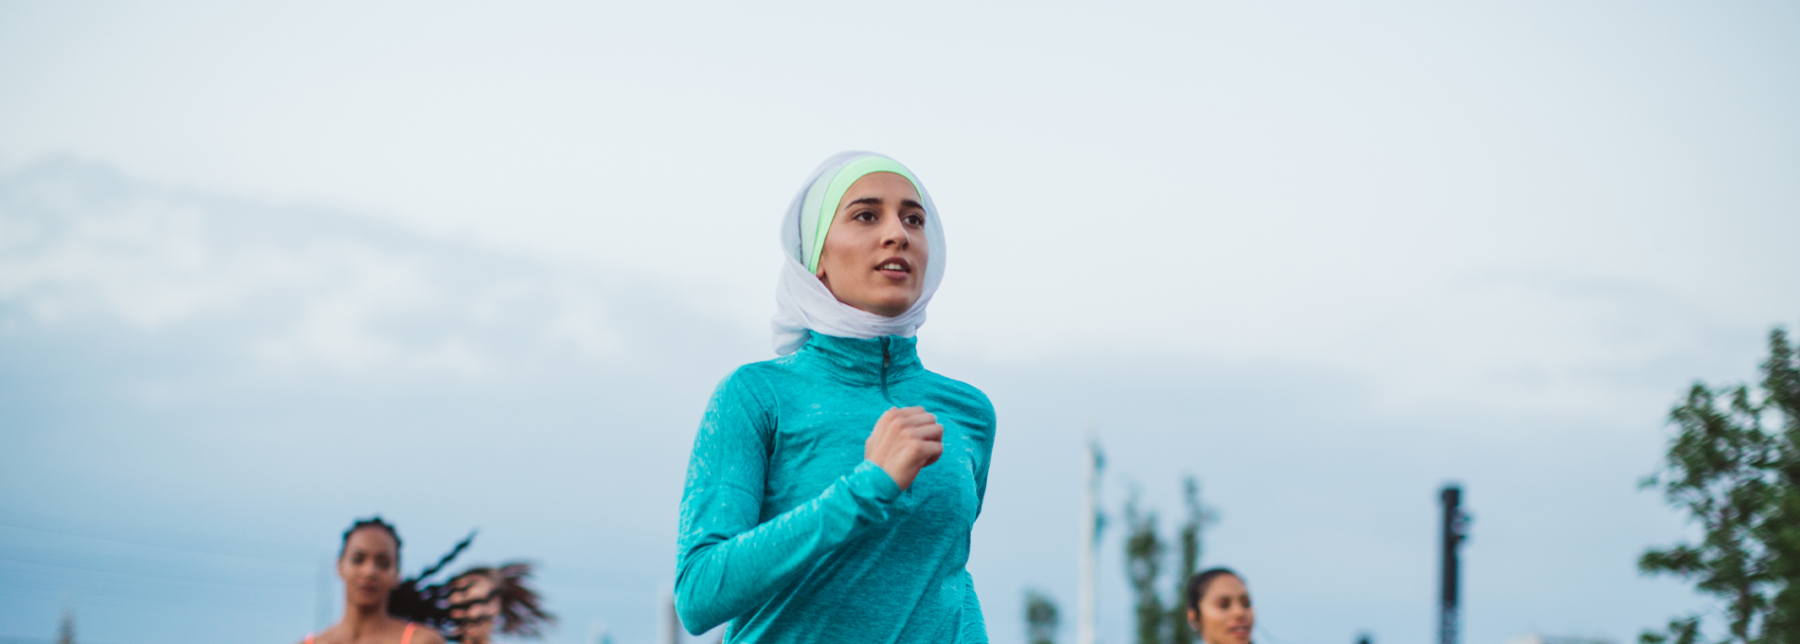 A woman running outside wearing activewear and a hijab